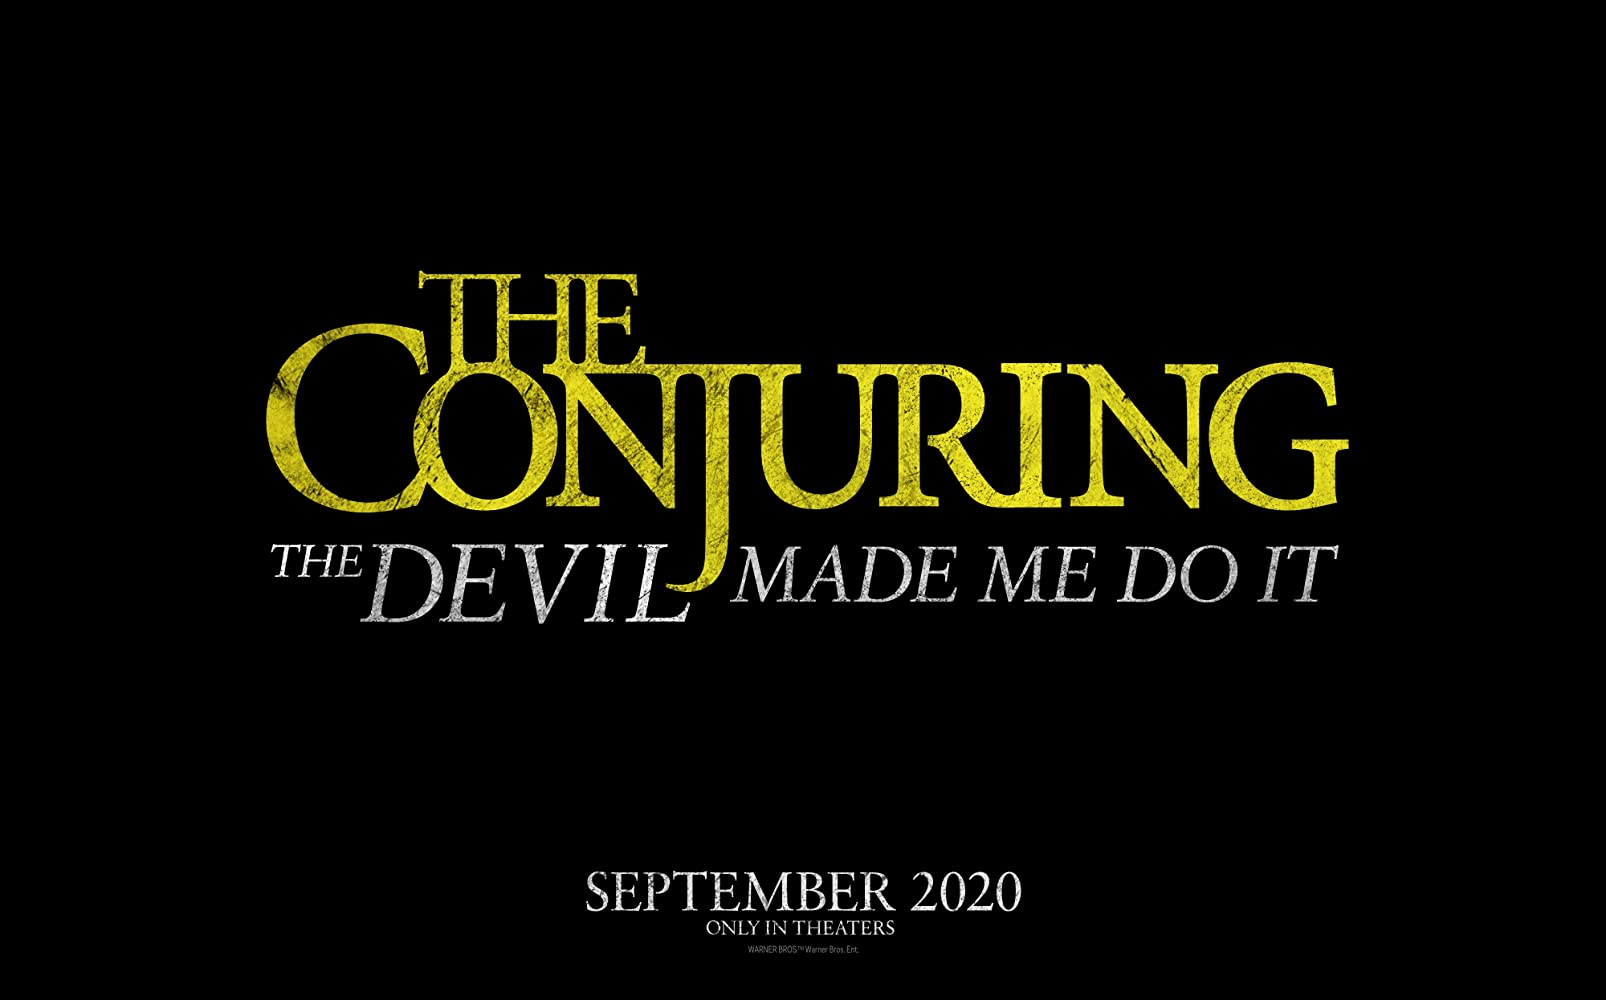 Ruairi O'Connor, Julian Hilliard, and Sarah Catherine Hook in The Conjuring: The Devil Made Me Do It (2021)